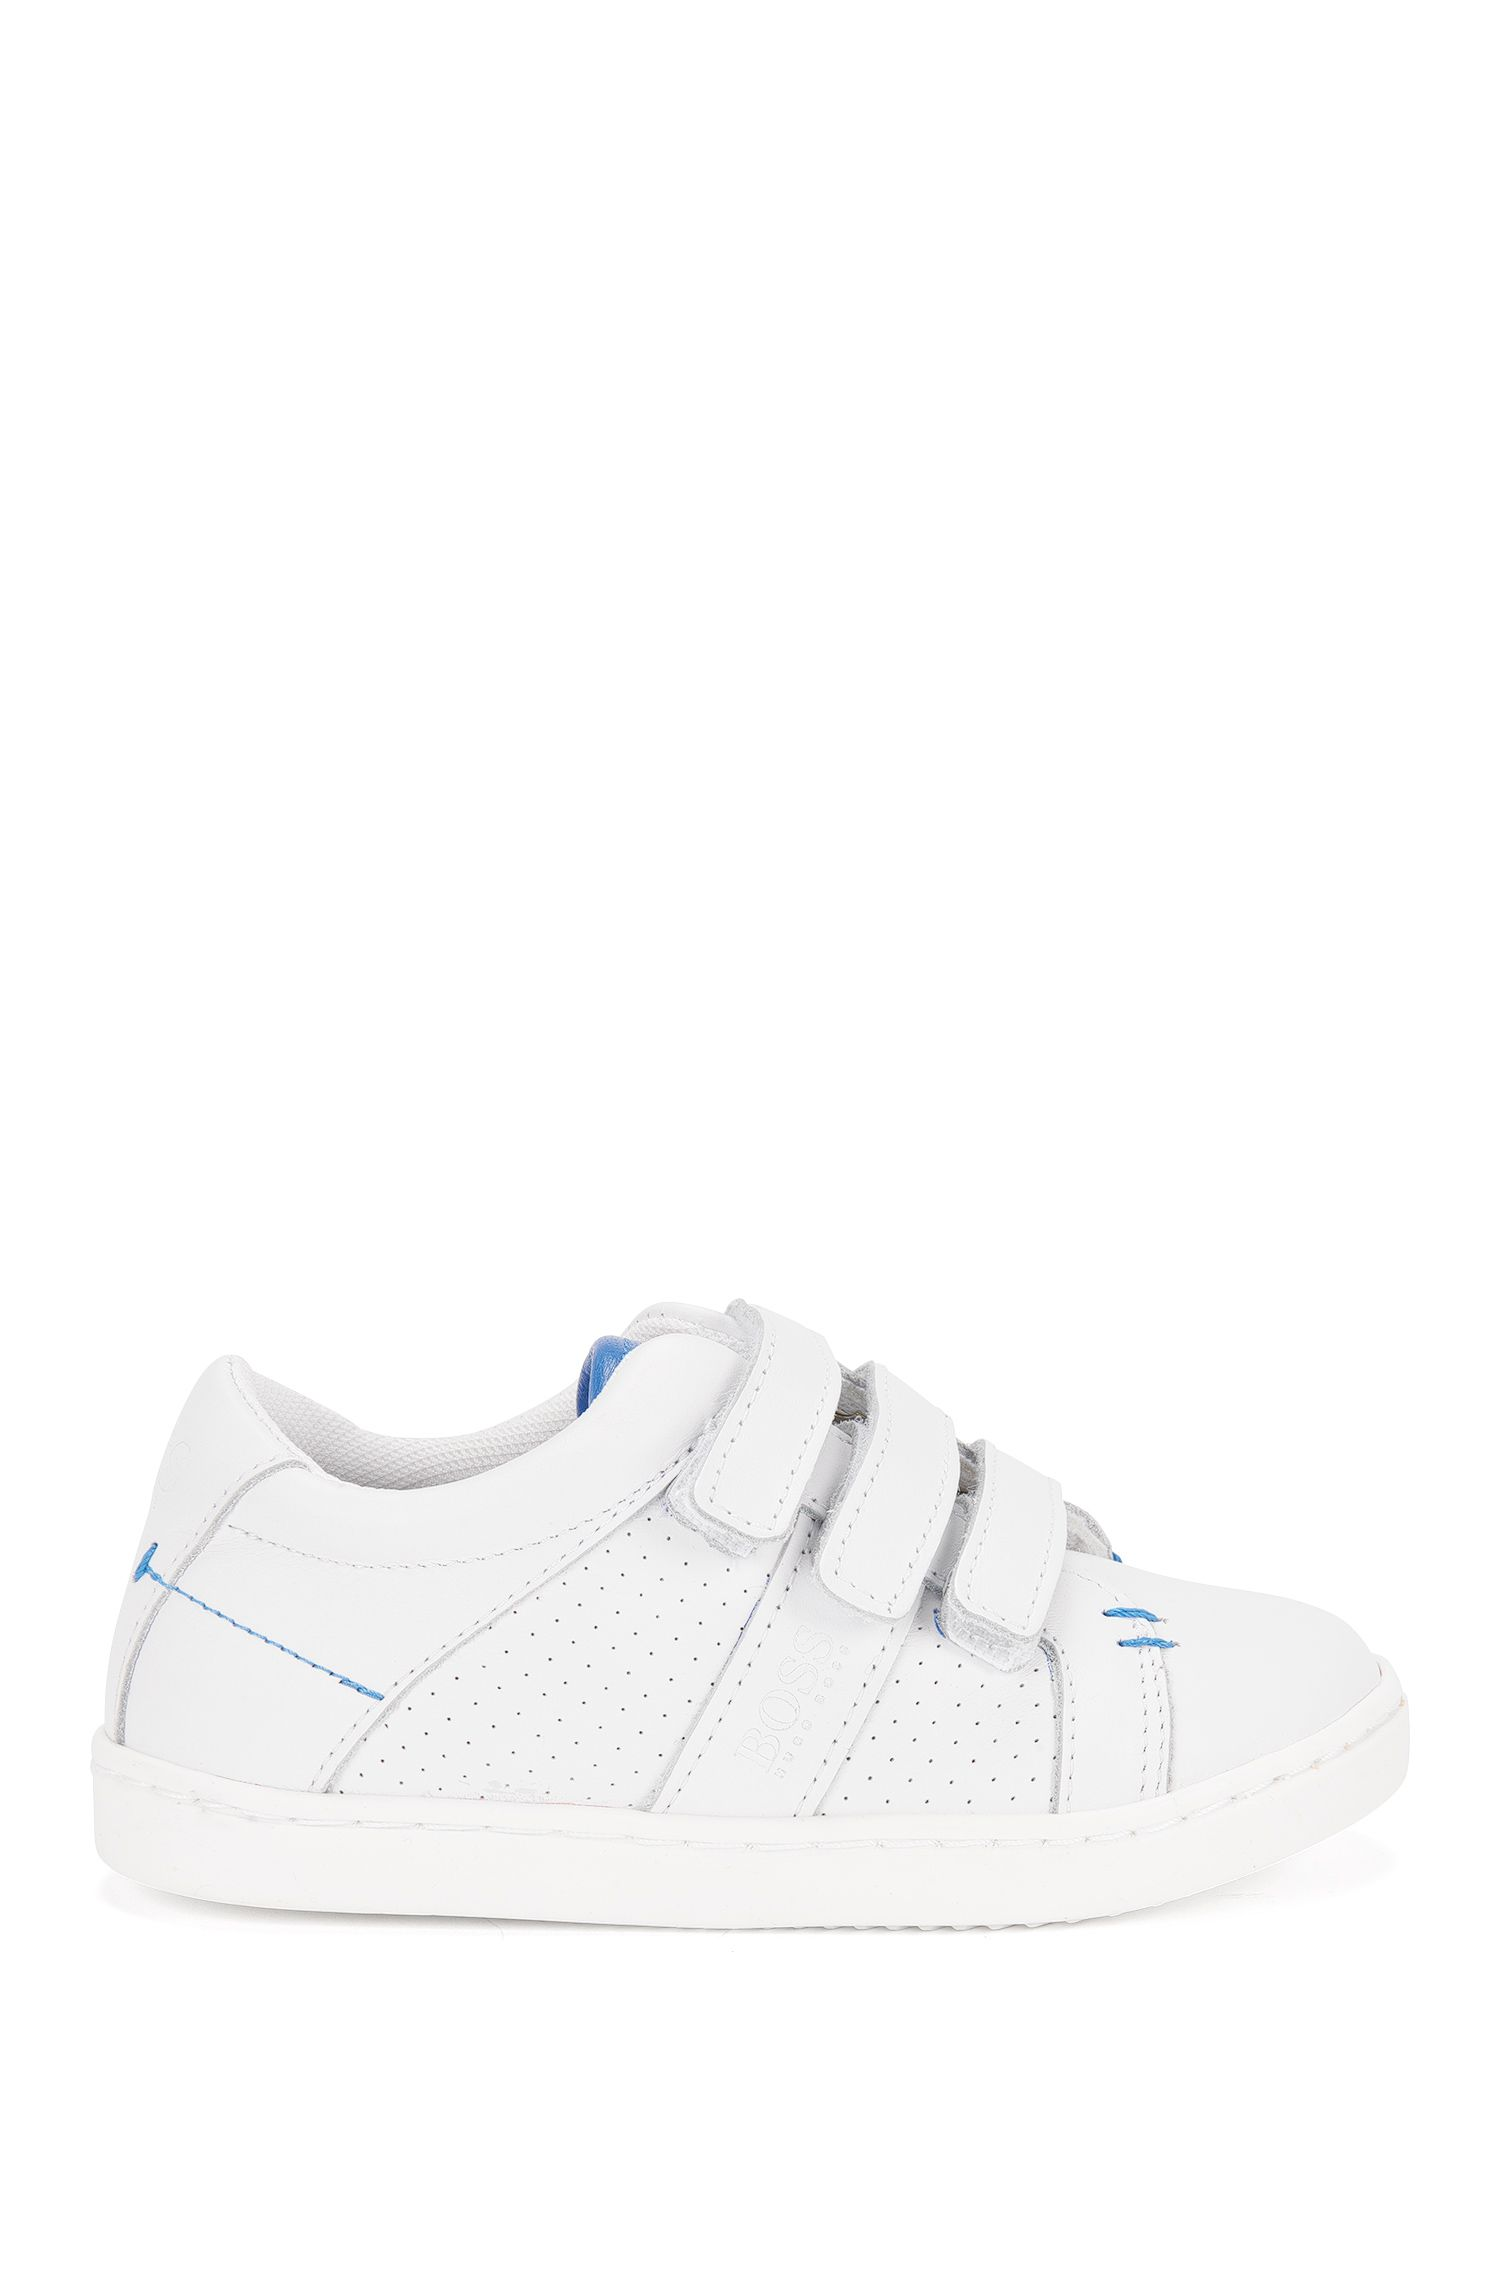 'J29114' | Leather Sneakers